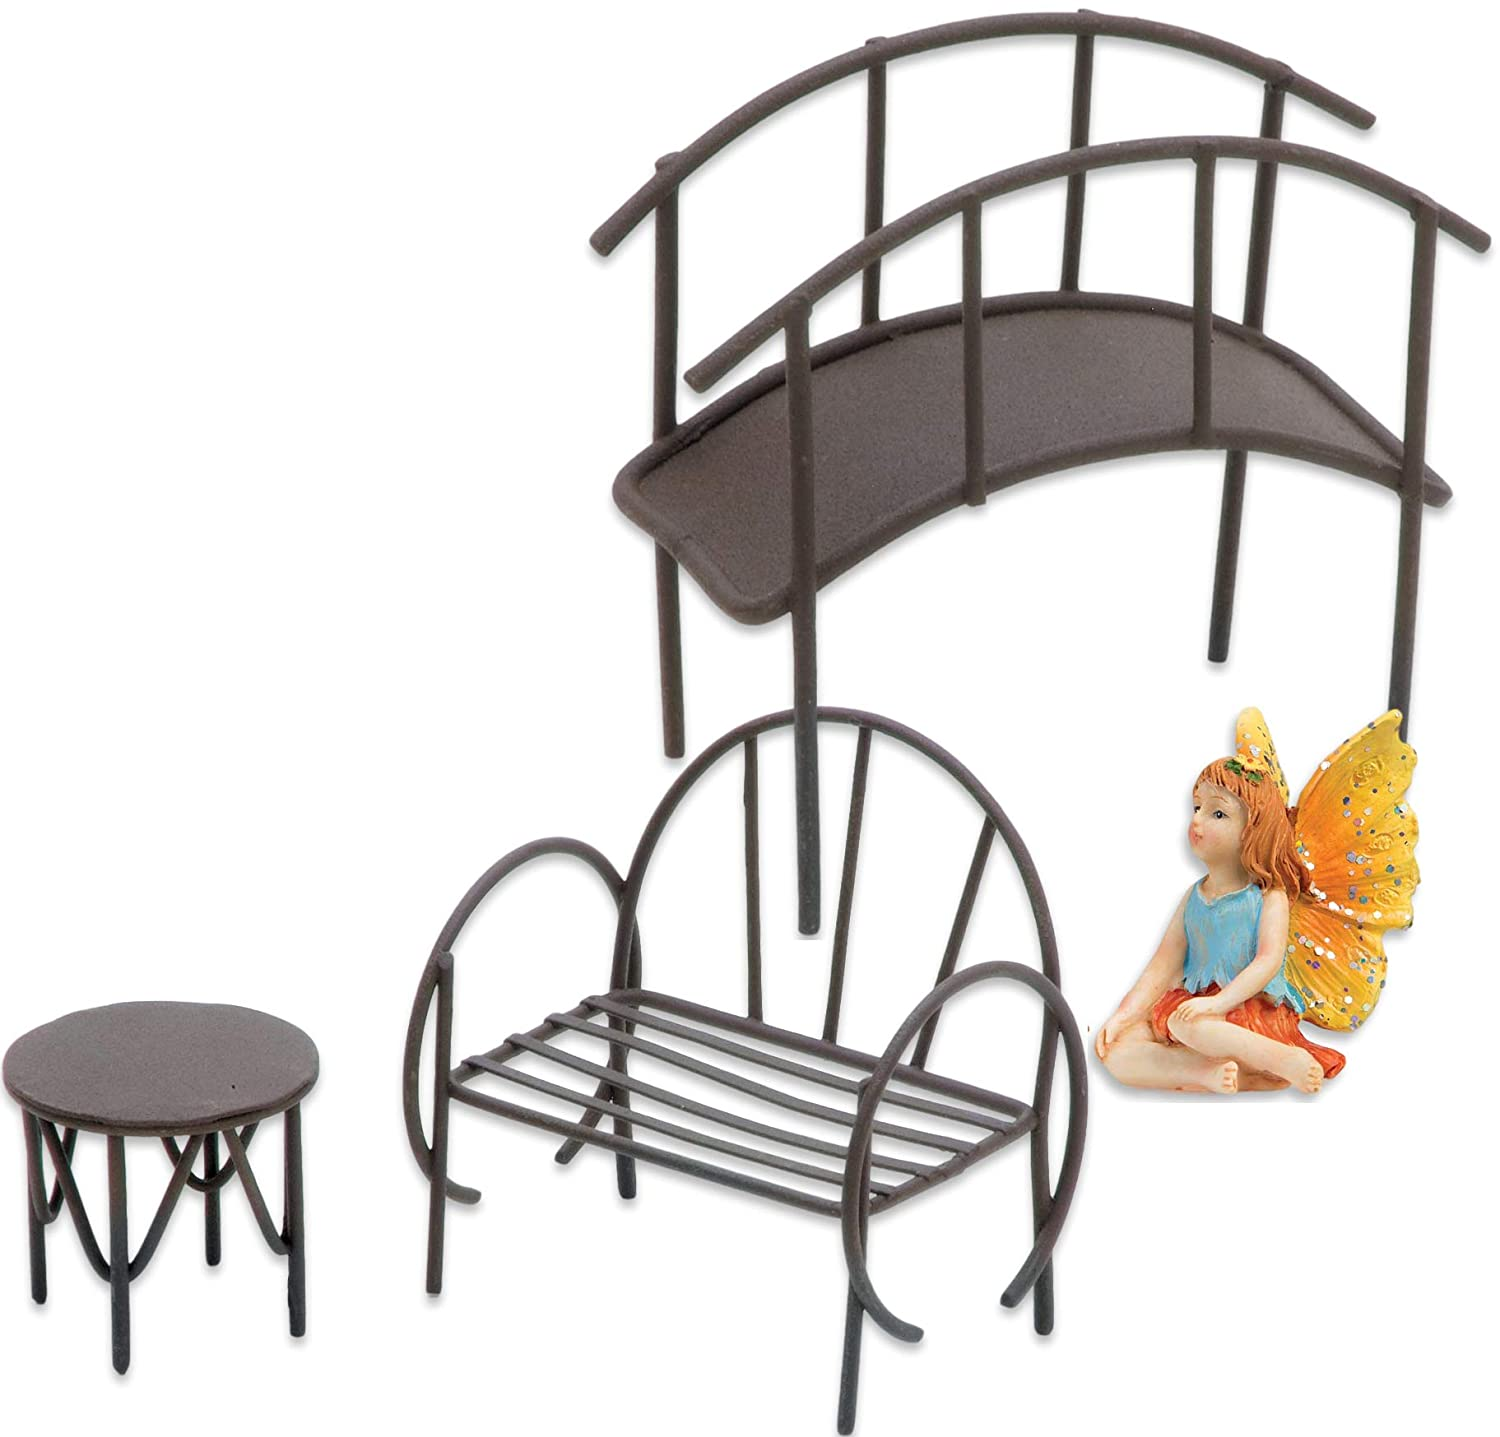 Superior Home Arts Fairy Garden Accessories Metal Bridge, Table, Bench, and Fairy Bundle of 4 Miniature Items Fairy Garden Starter Kit (Fairy with Orange Yellow Wings Blue Shirt)